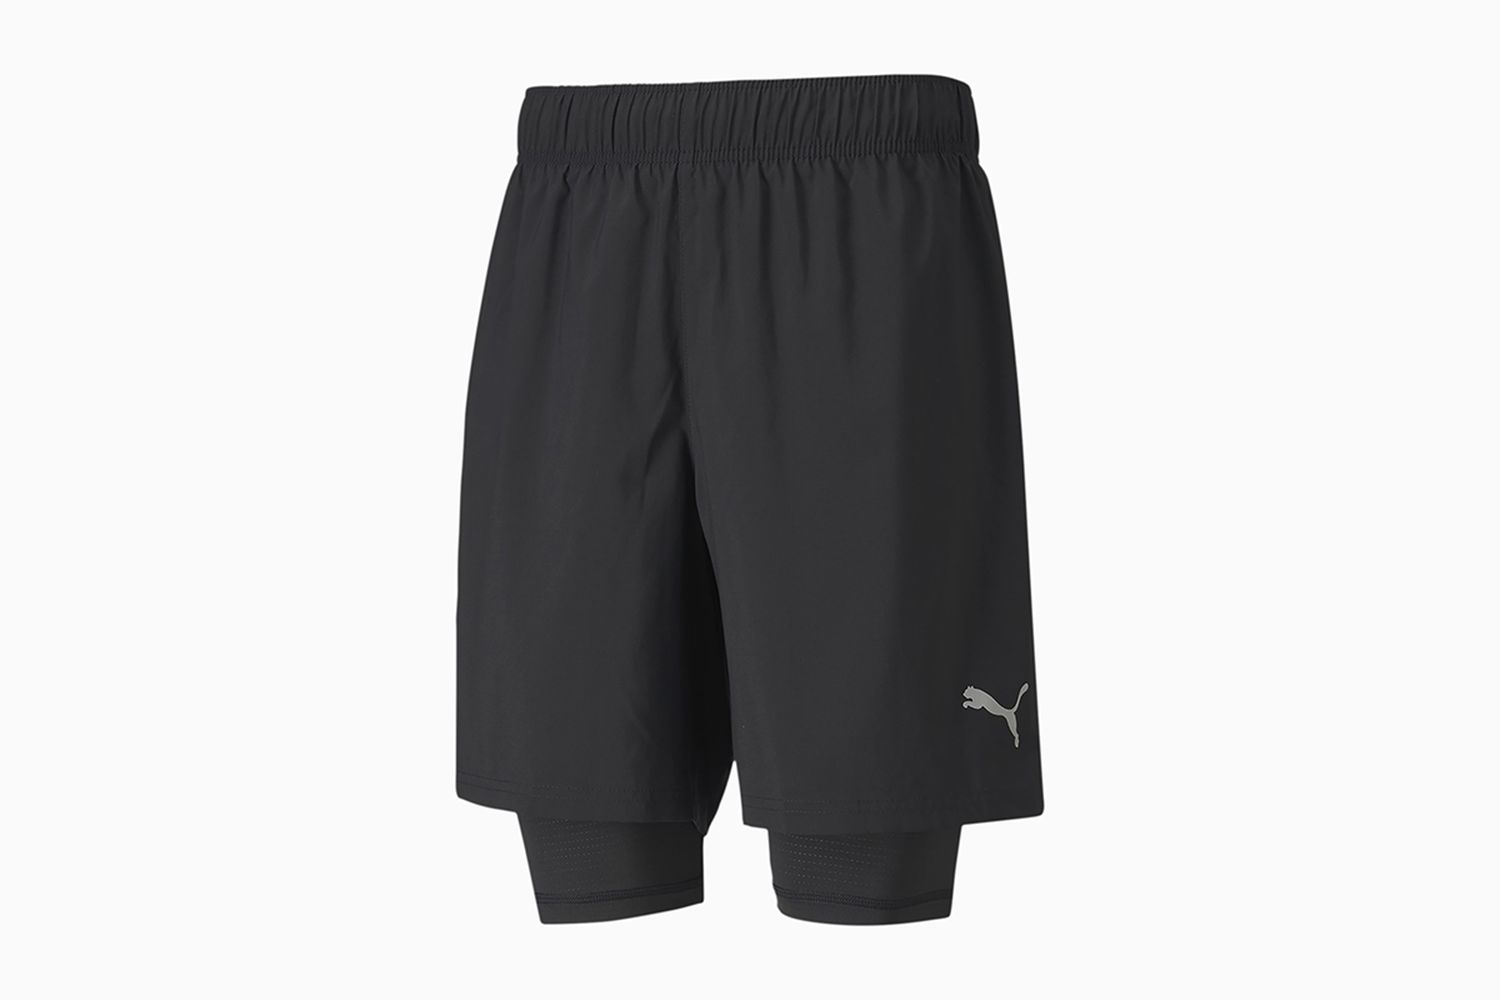 Last Lap 2-in-1 Running Shorts